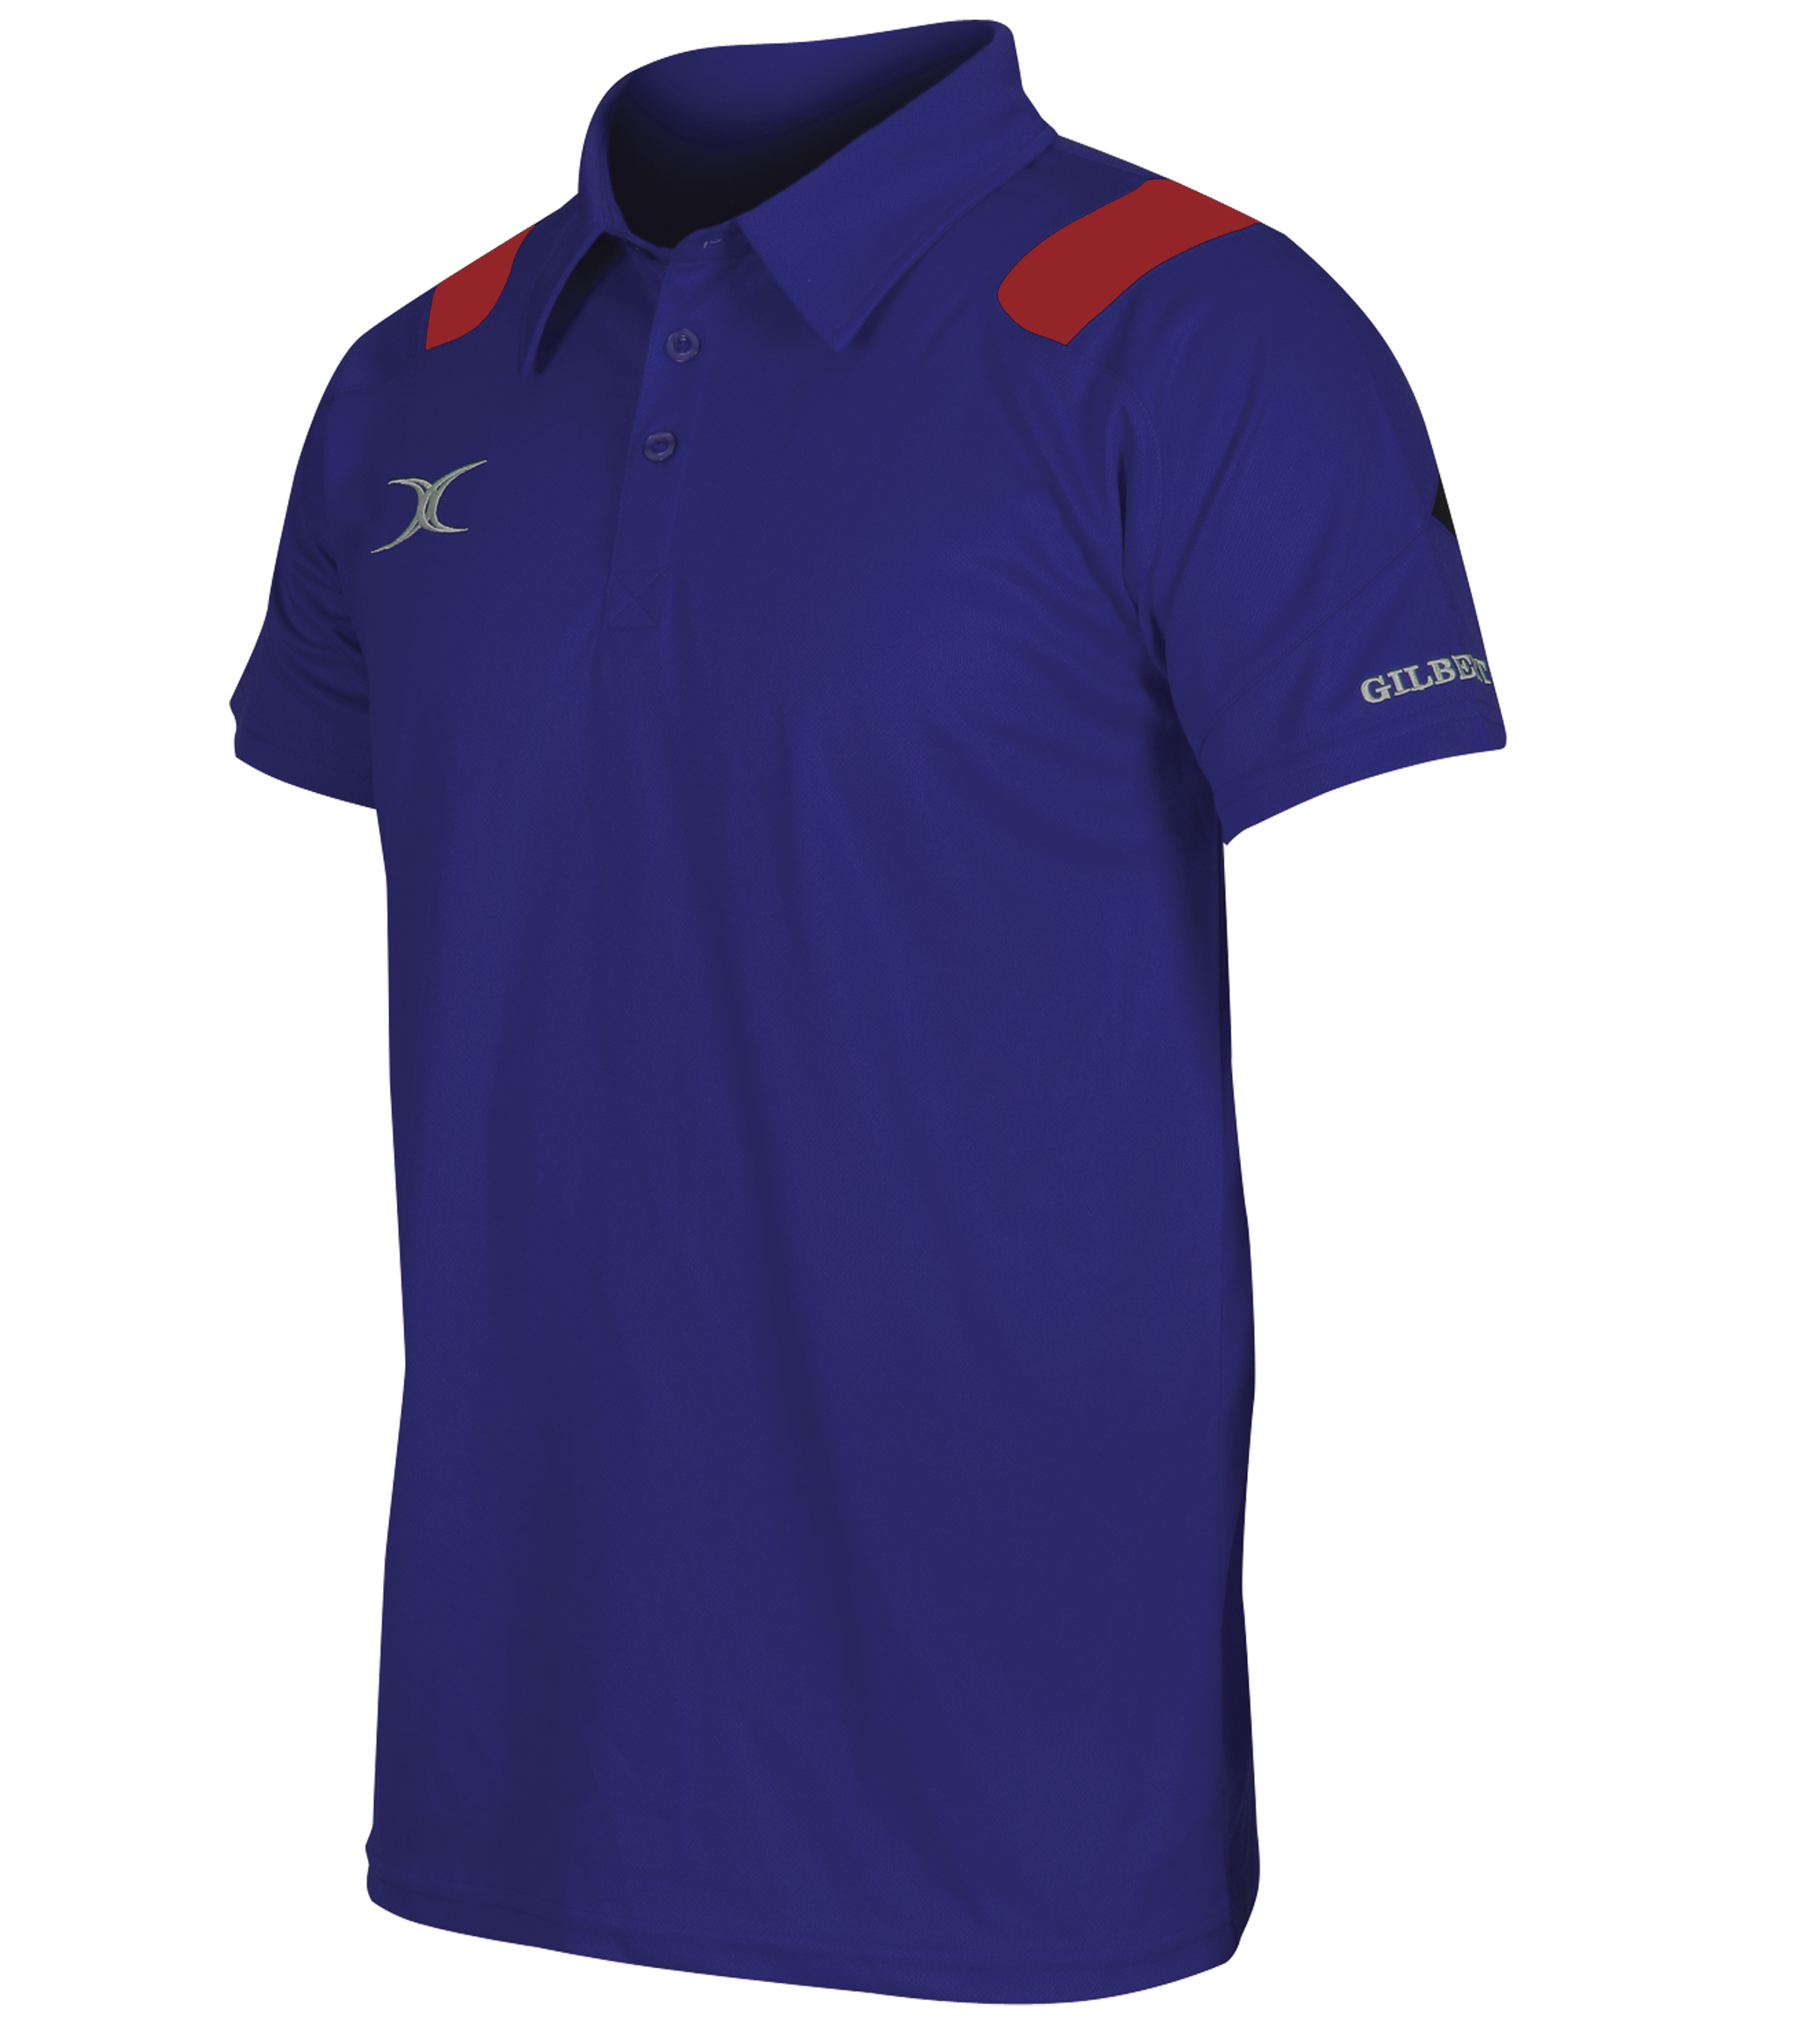 New-Gilbert-Rugby-Boys-Vapour-Polo-Leisure-Shirts-Mens-Casual-Wear-Playing-Tops